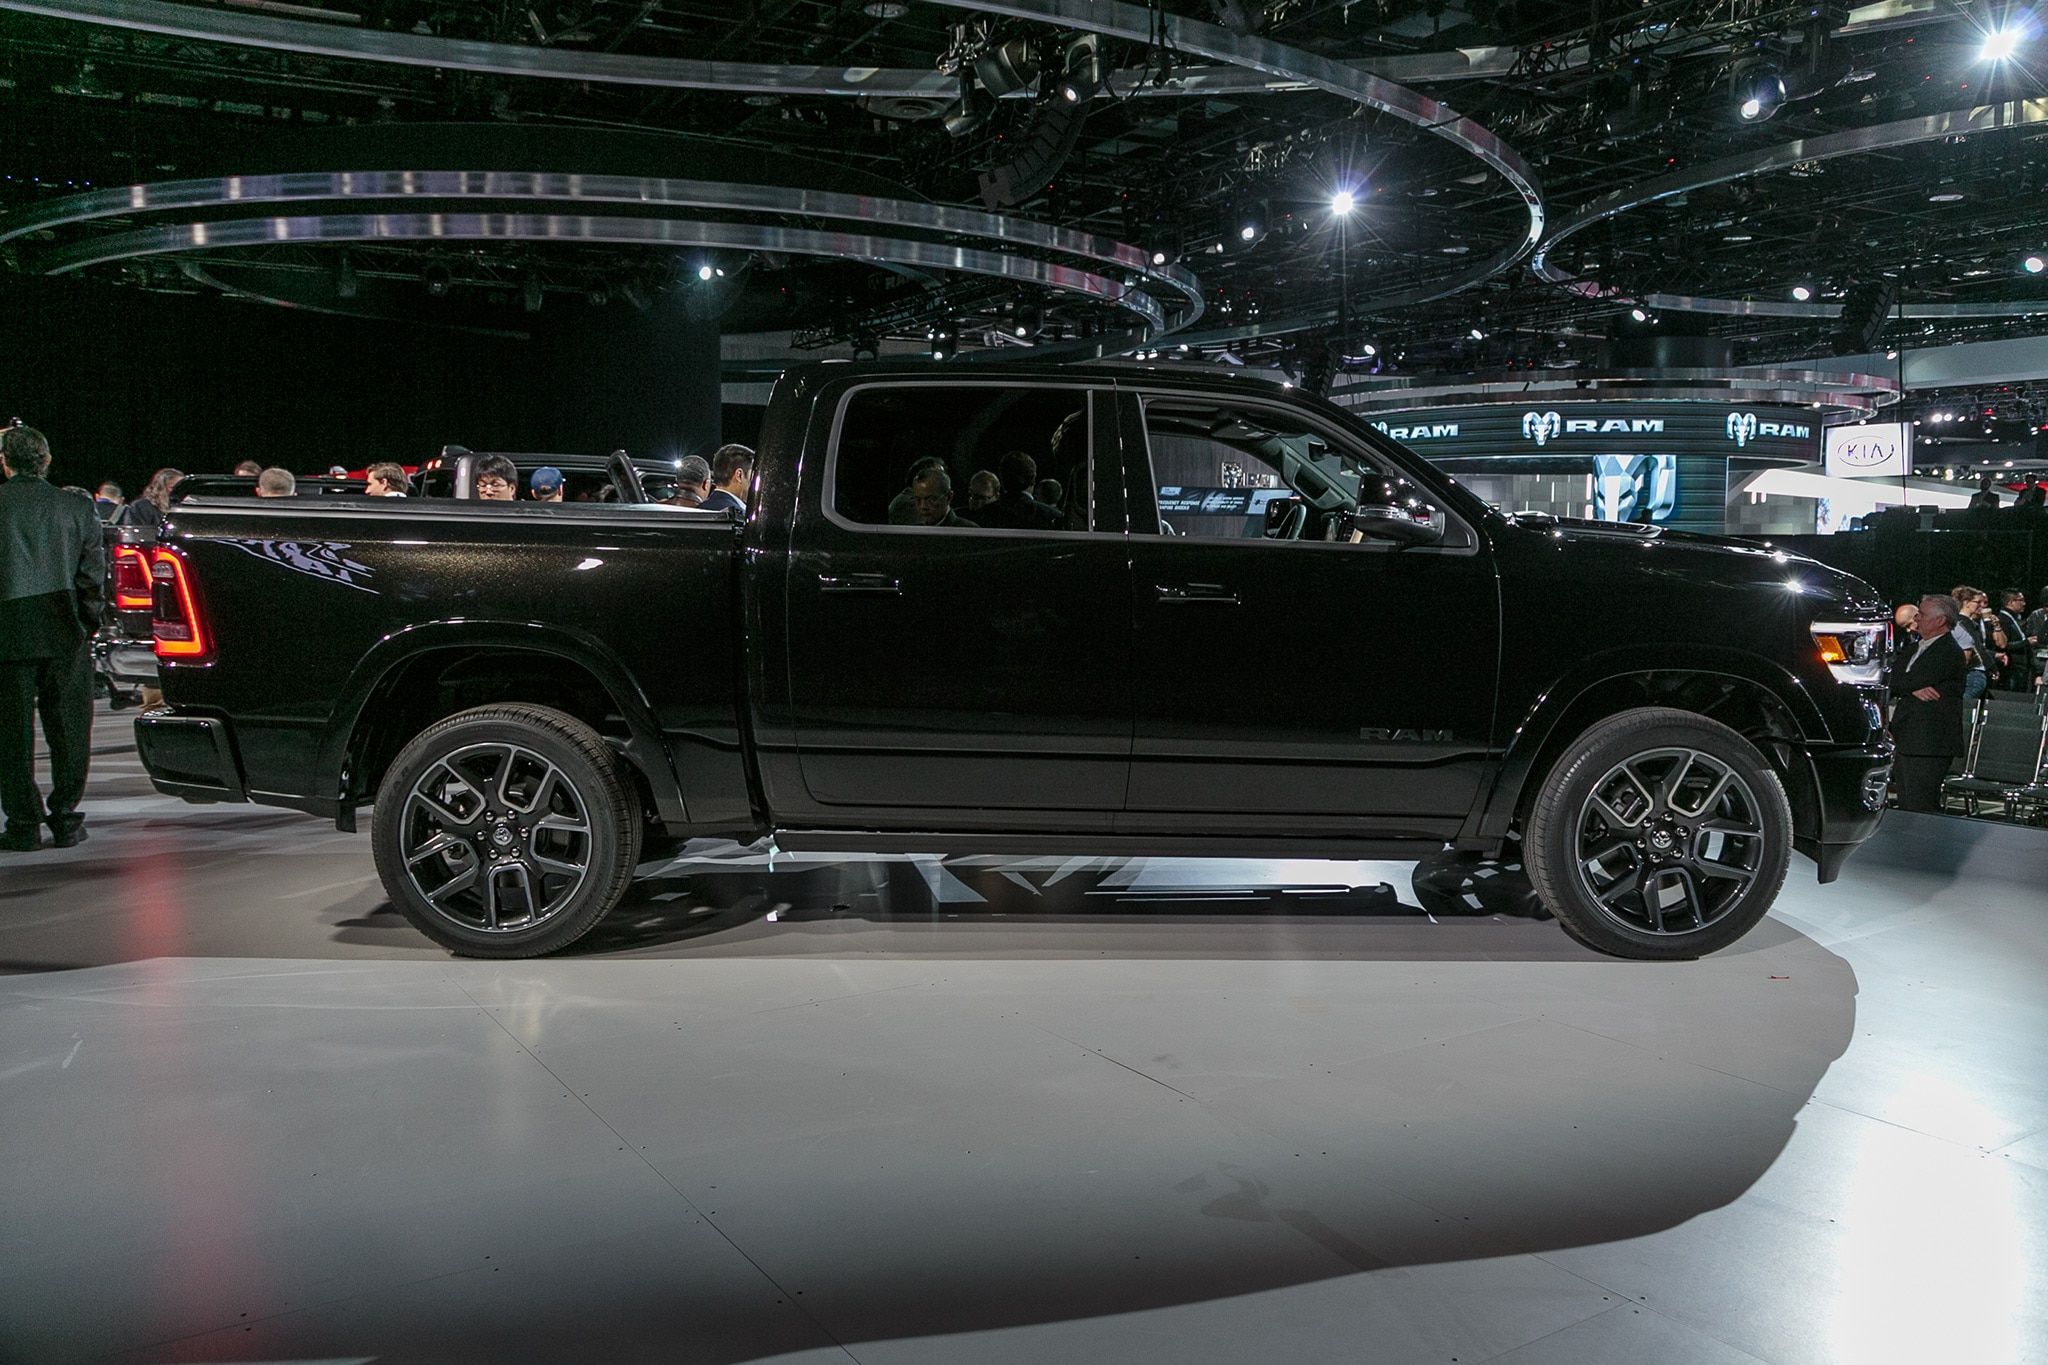 2019 Ram 1500 Priced Starting at $33,340 | Automobile Magazine